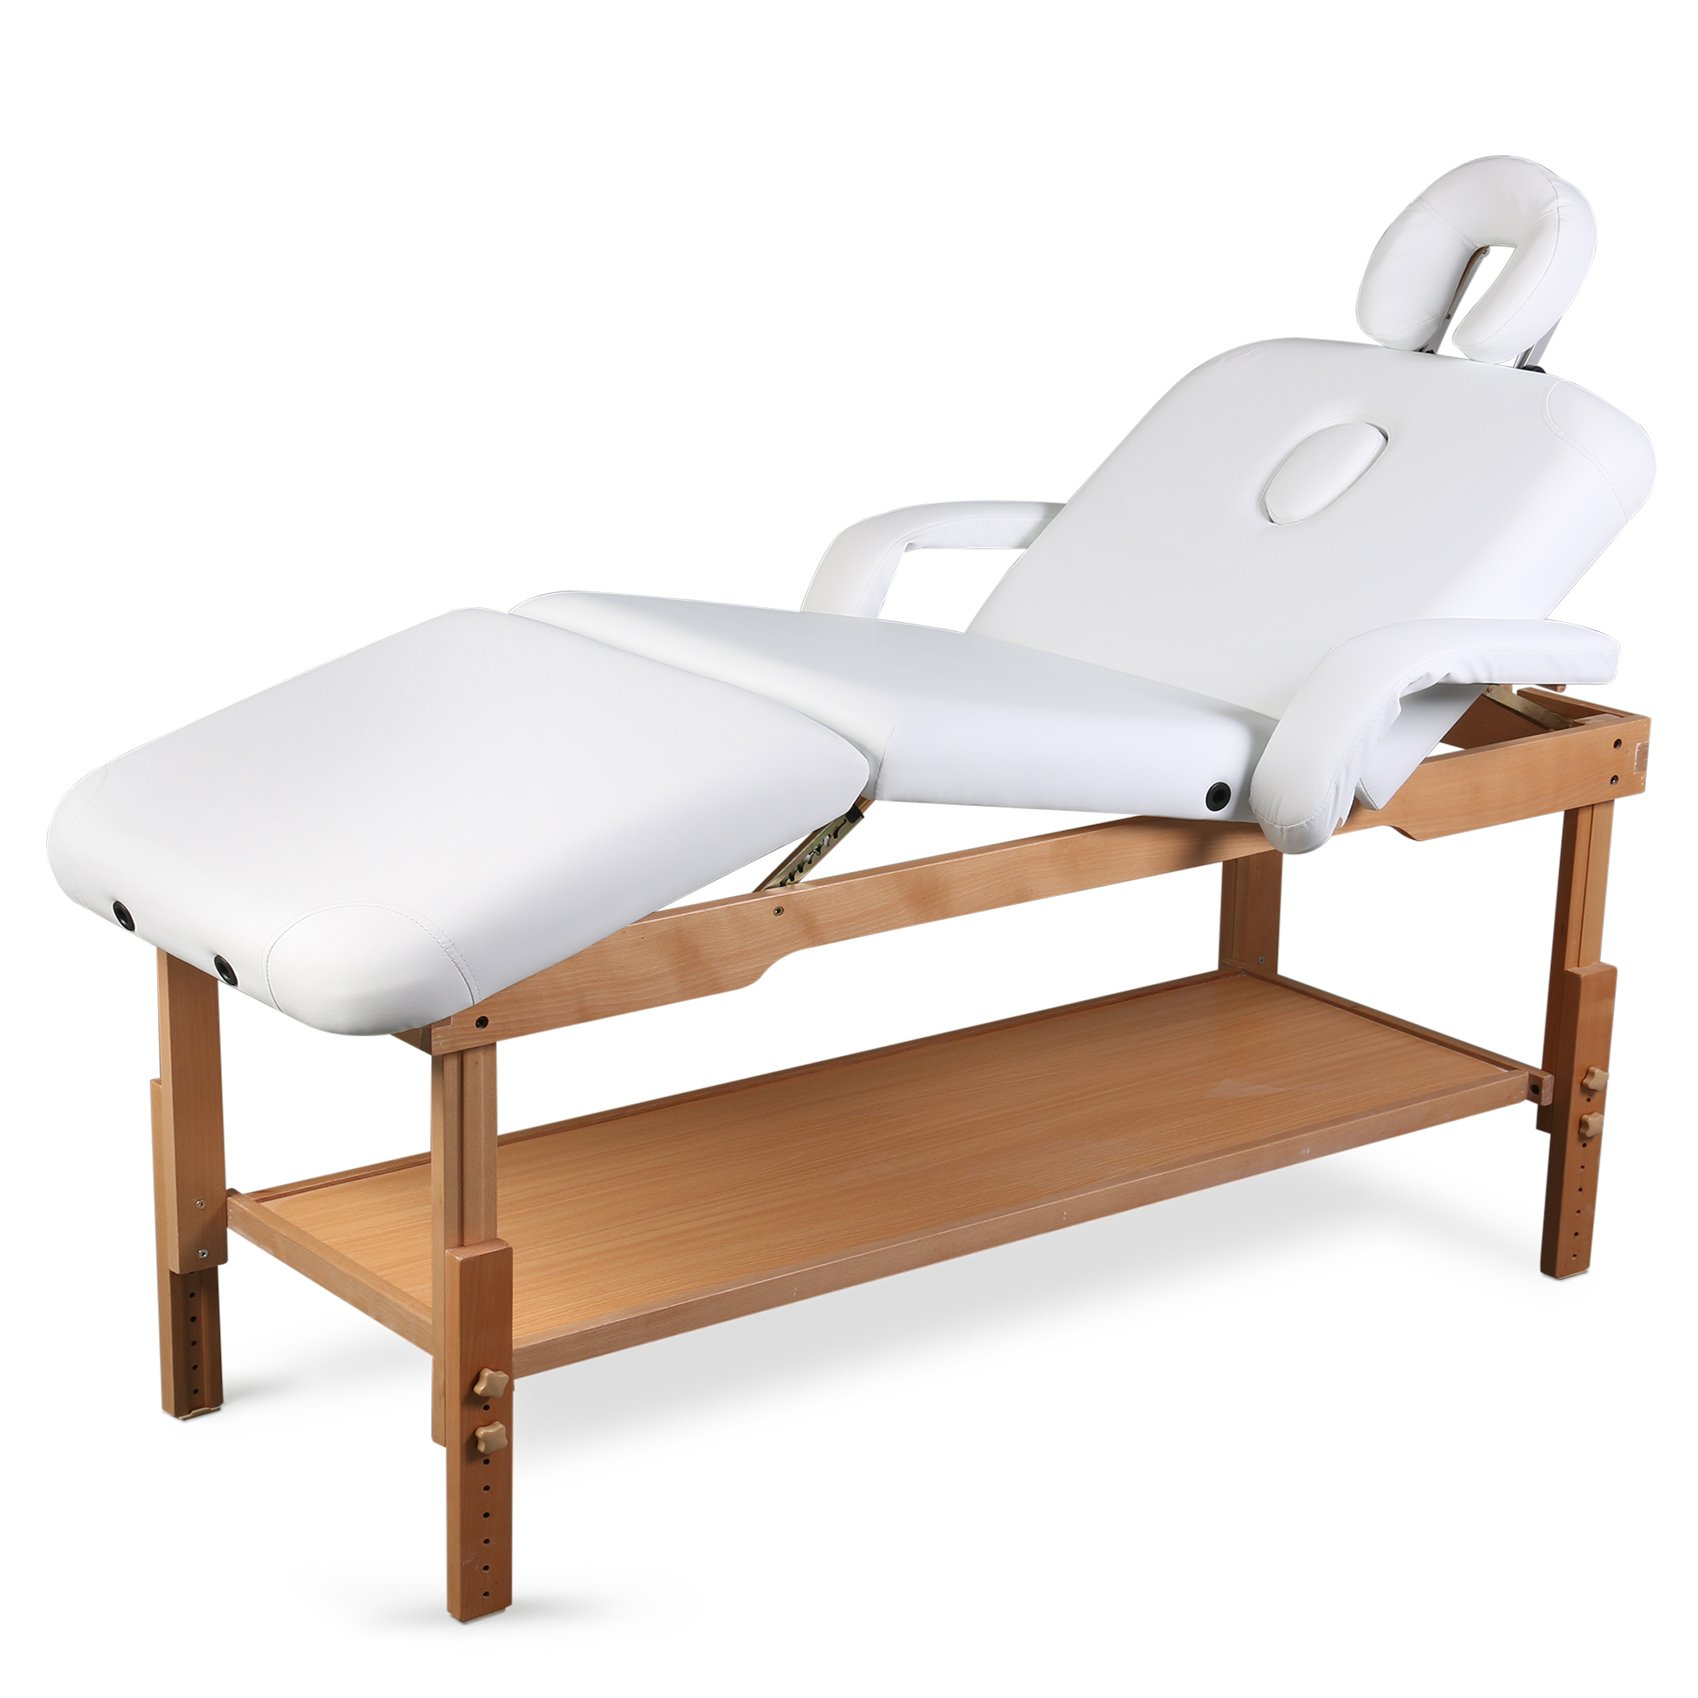 3 Sections Professional Stationary Massage Table Bed Beauty Therapy Salon Couch